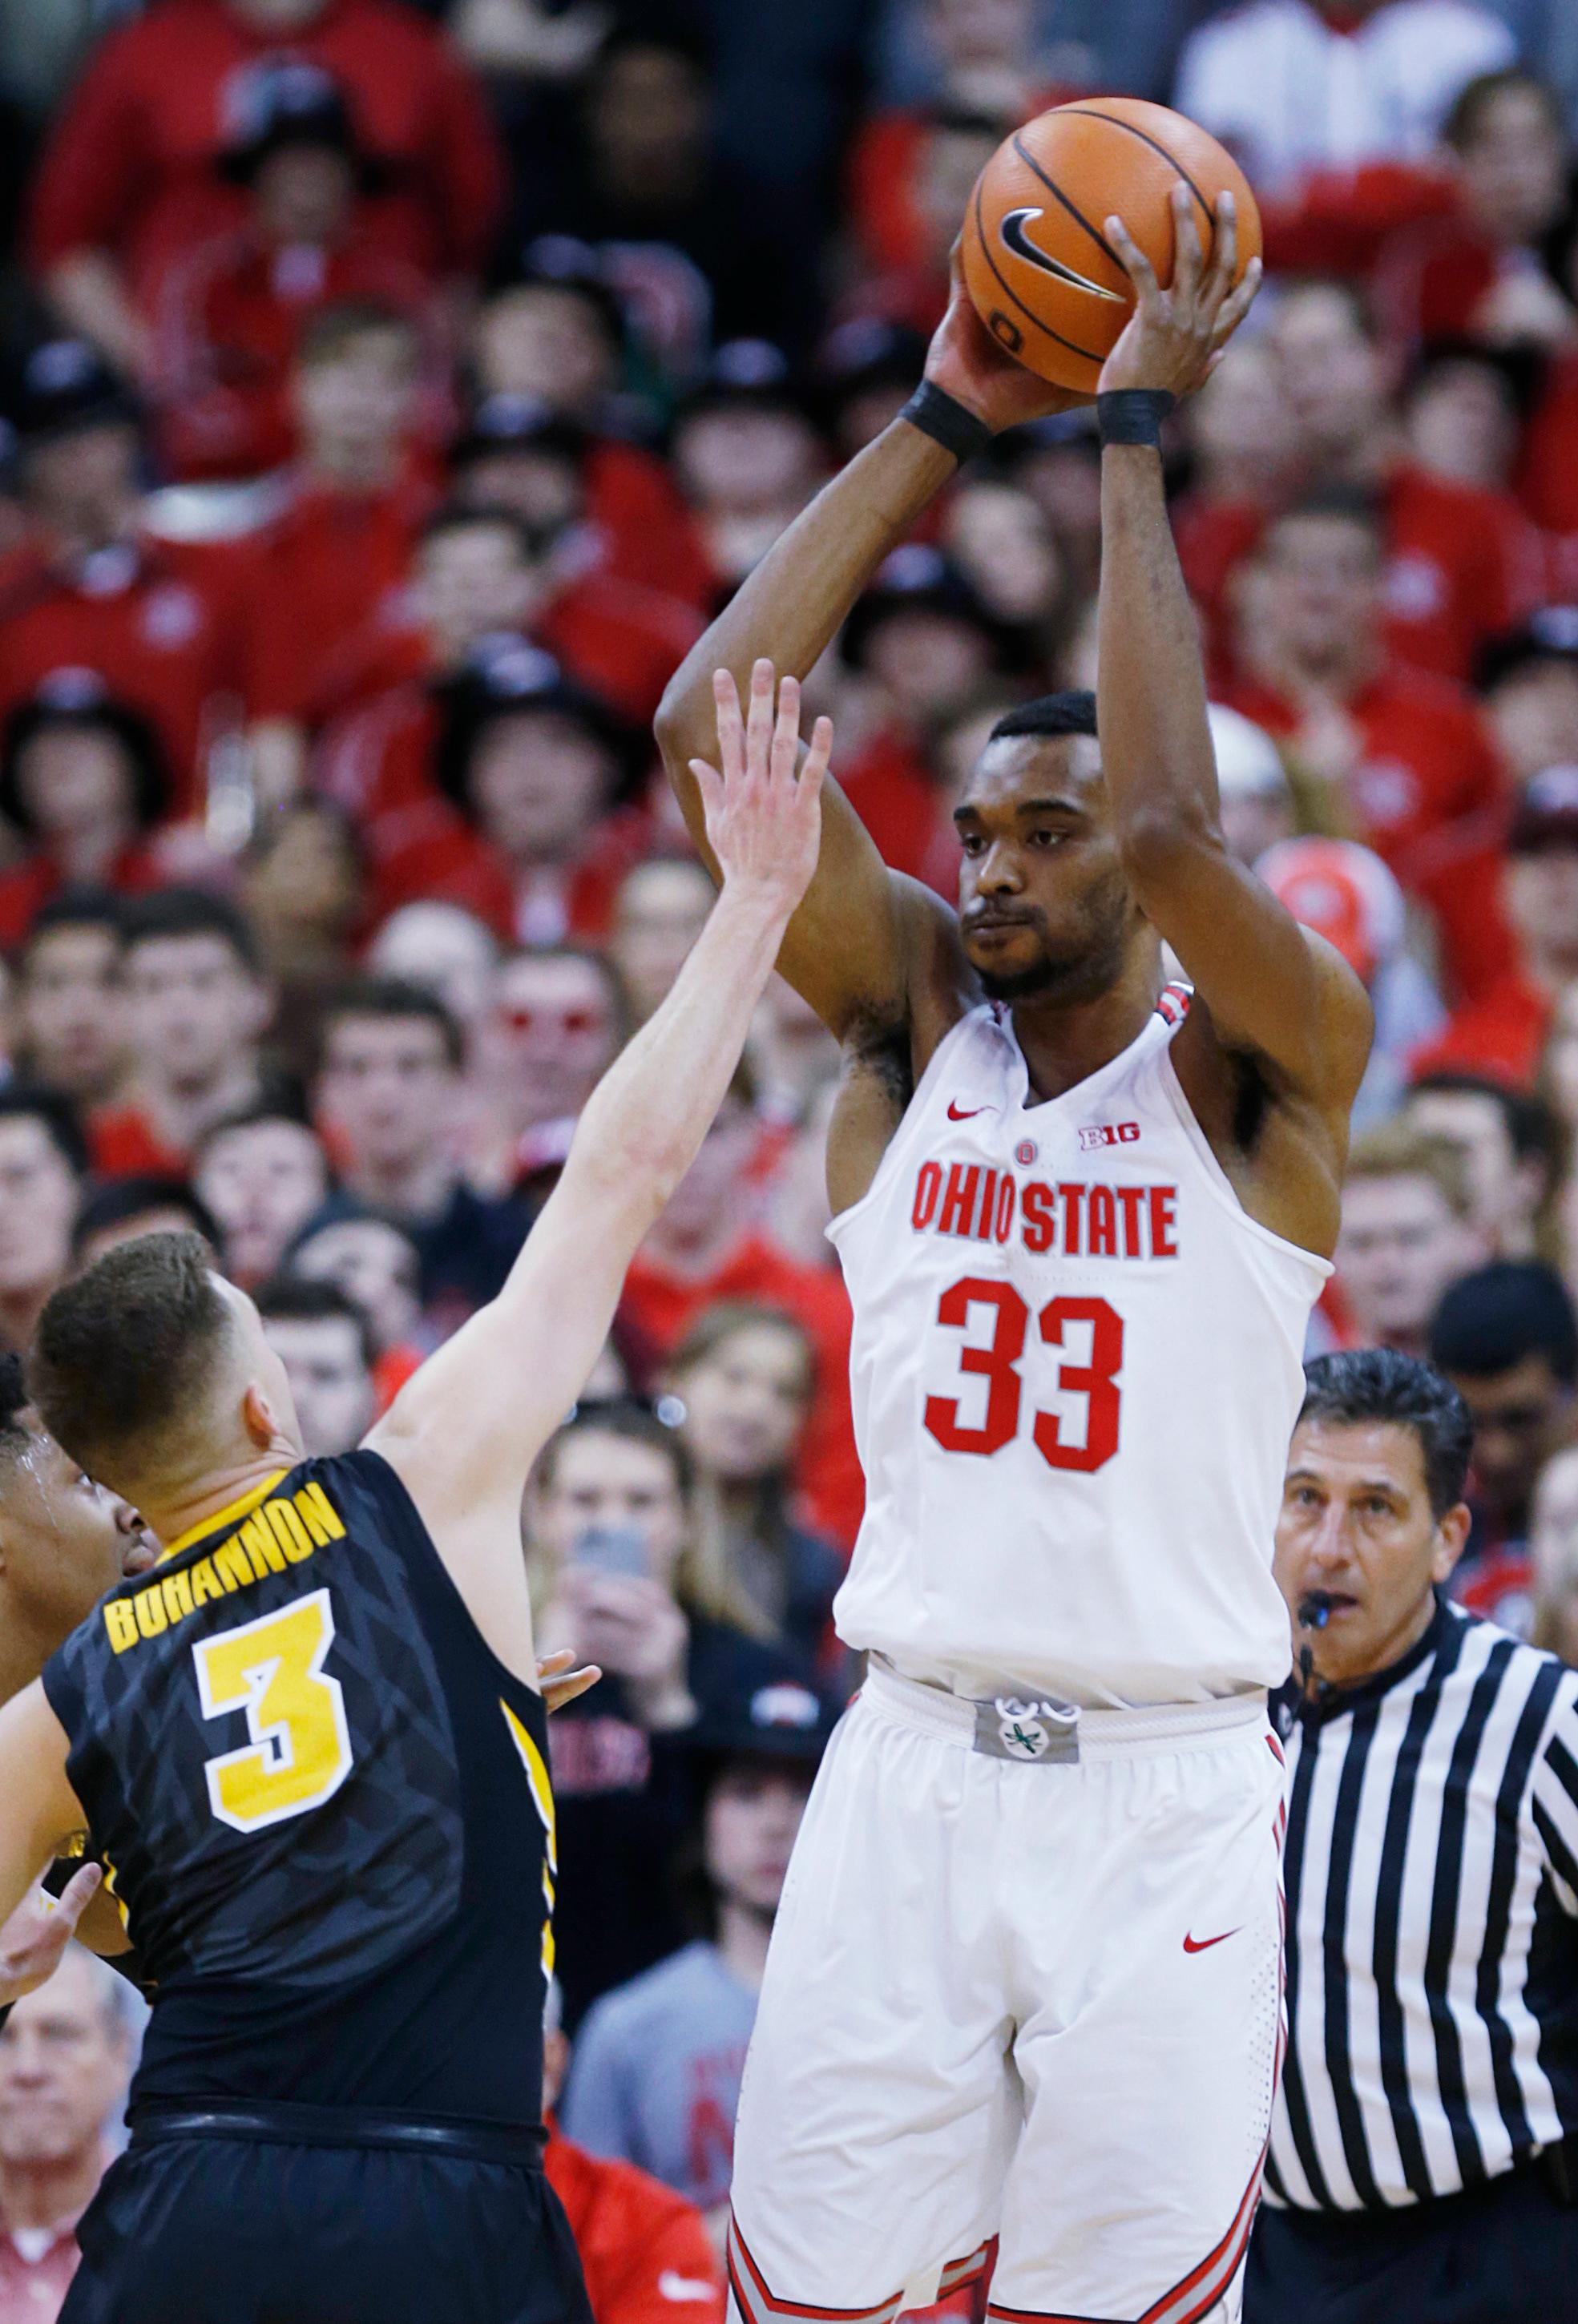 Ohio State forward Keita Bates-Diop, right, passes against Iowa guard Jordan Bohannon during the first half of an NCAA college basketball game in Columbus, Ohio, Saturday, Feb. 10, 2018. (AP Photo/Paul Vernon)